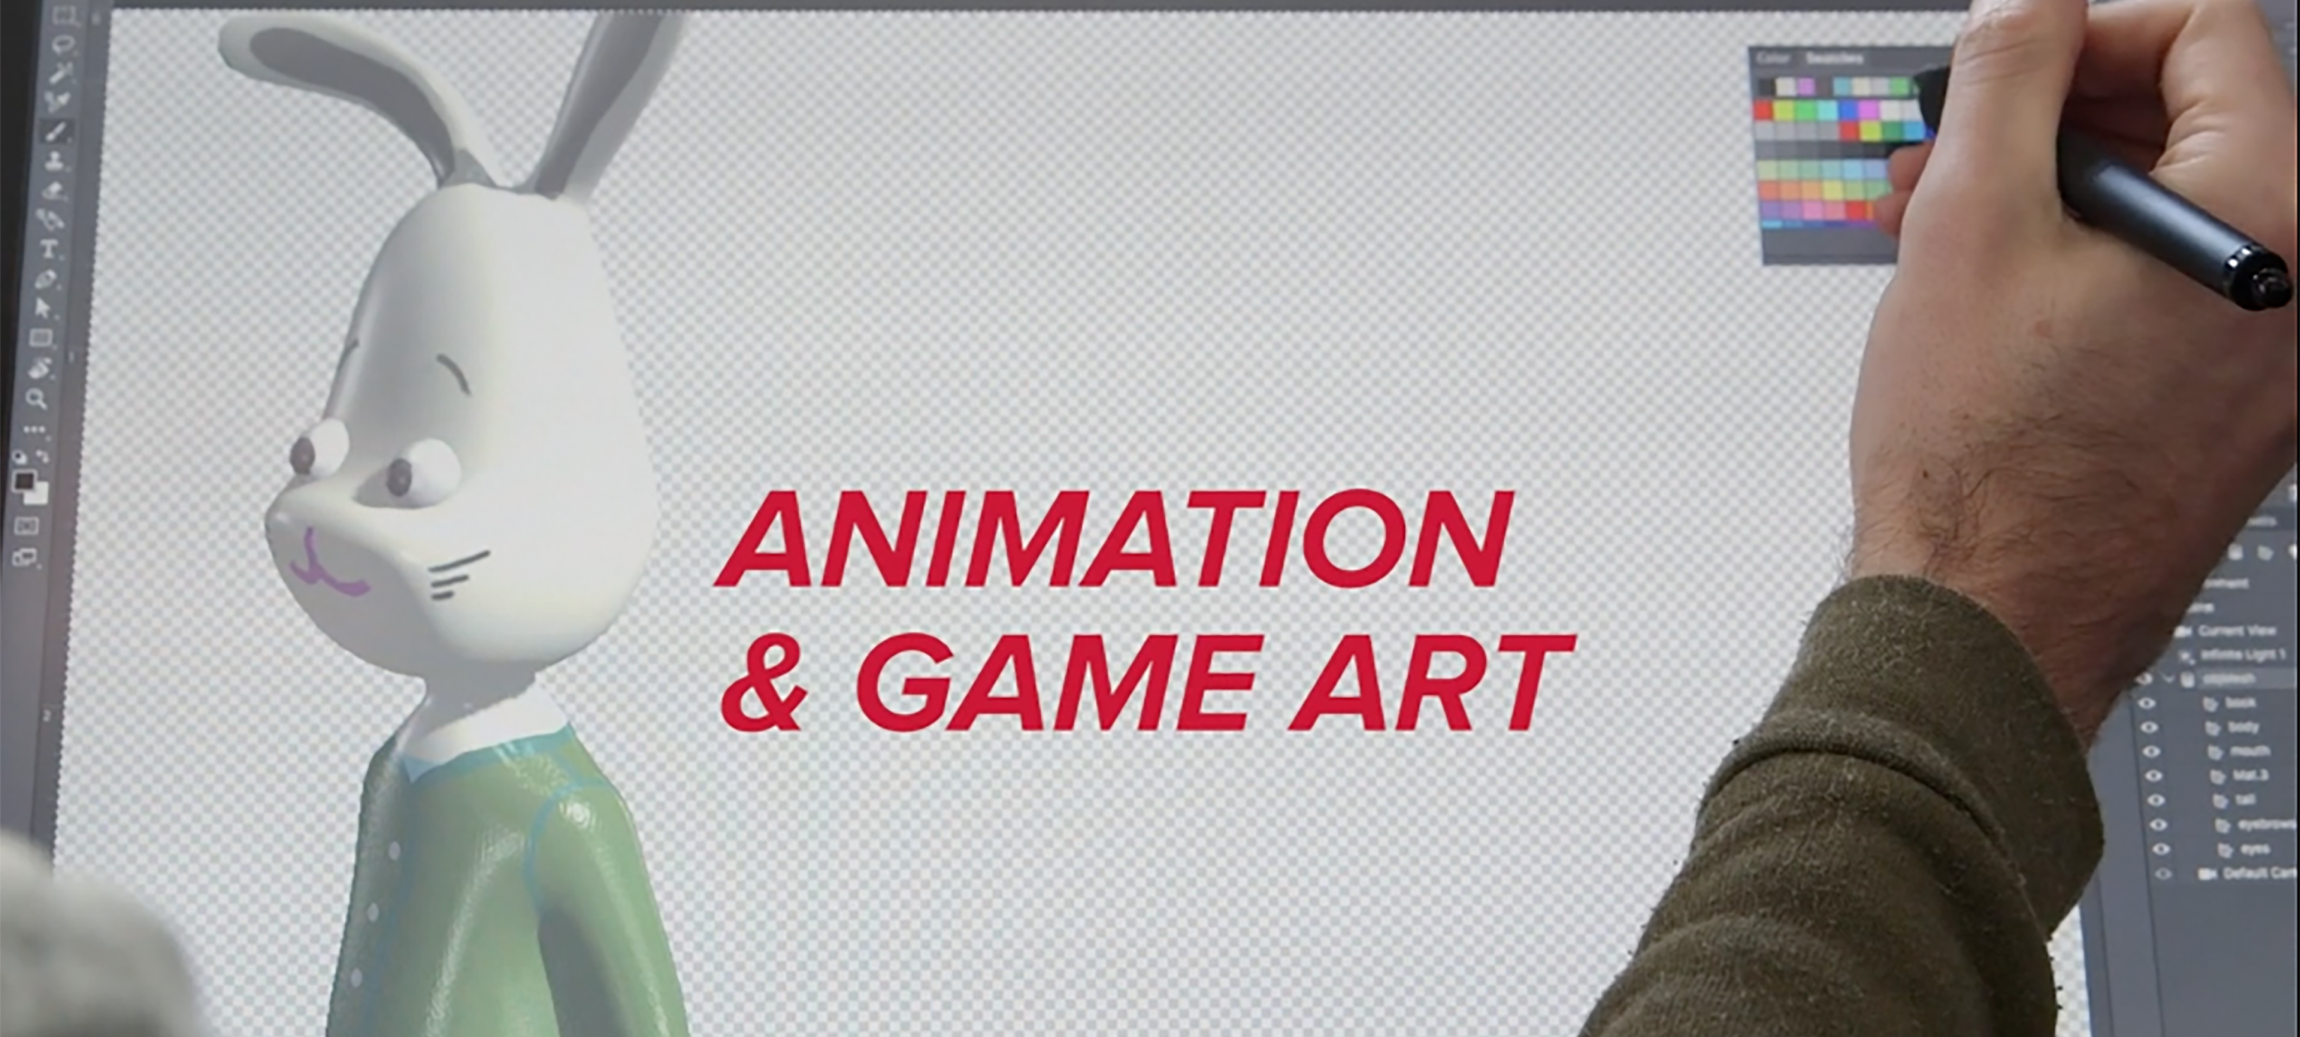 Video: Animation & Game Art at MECA image